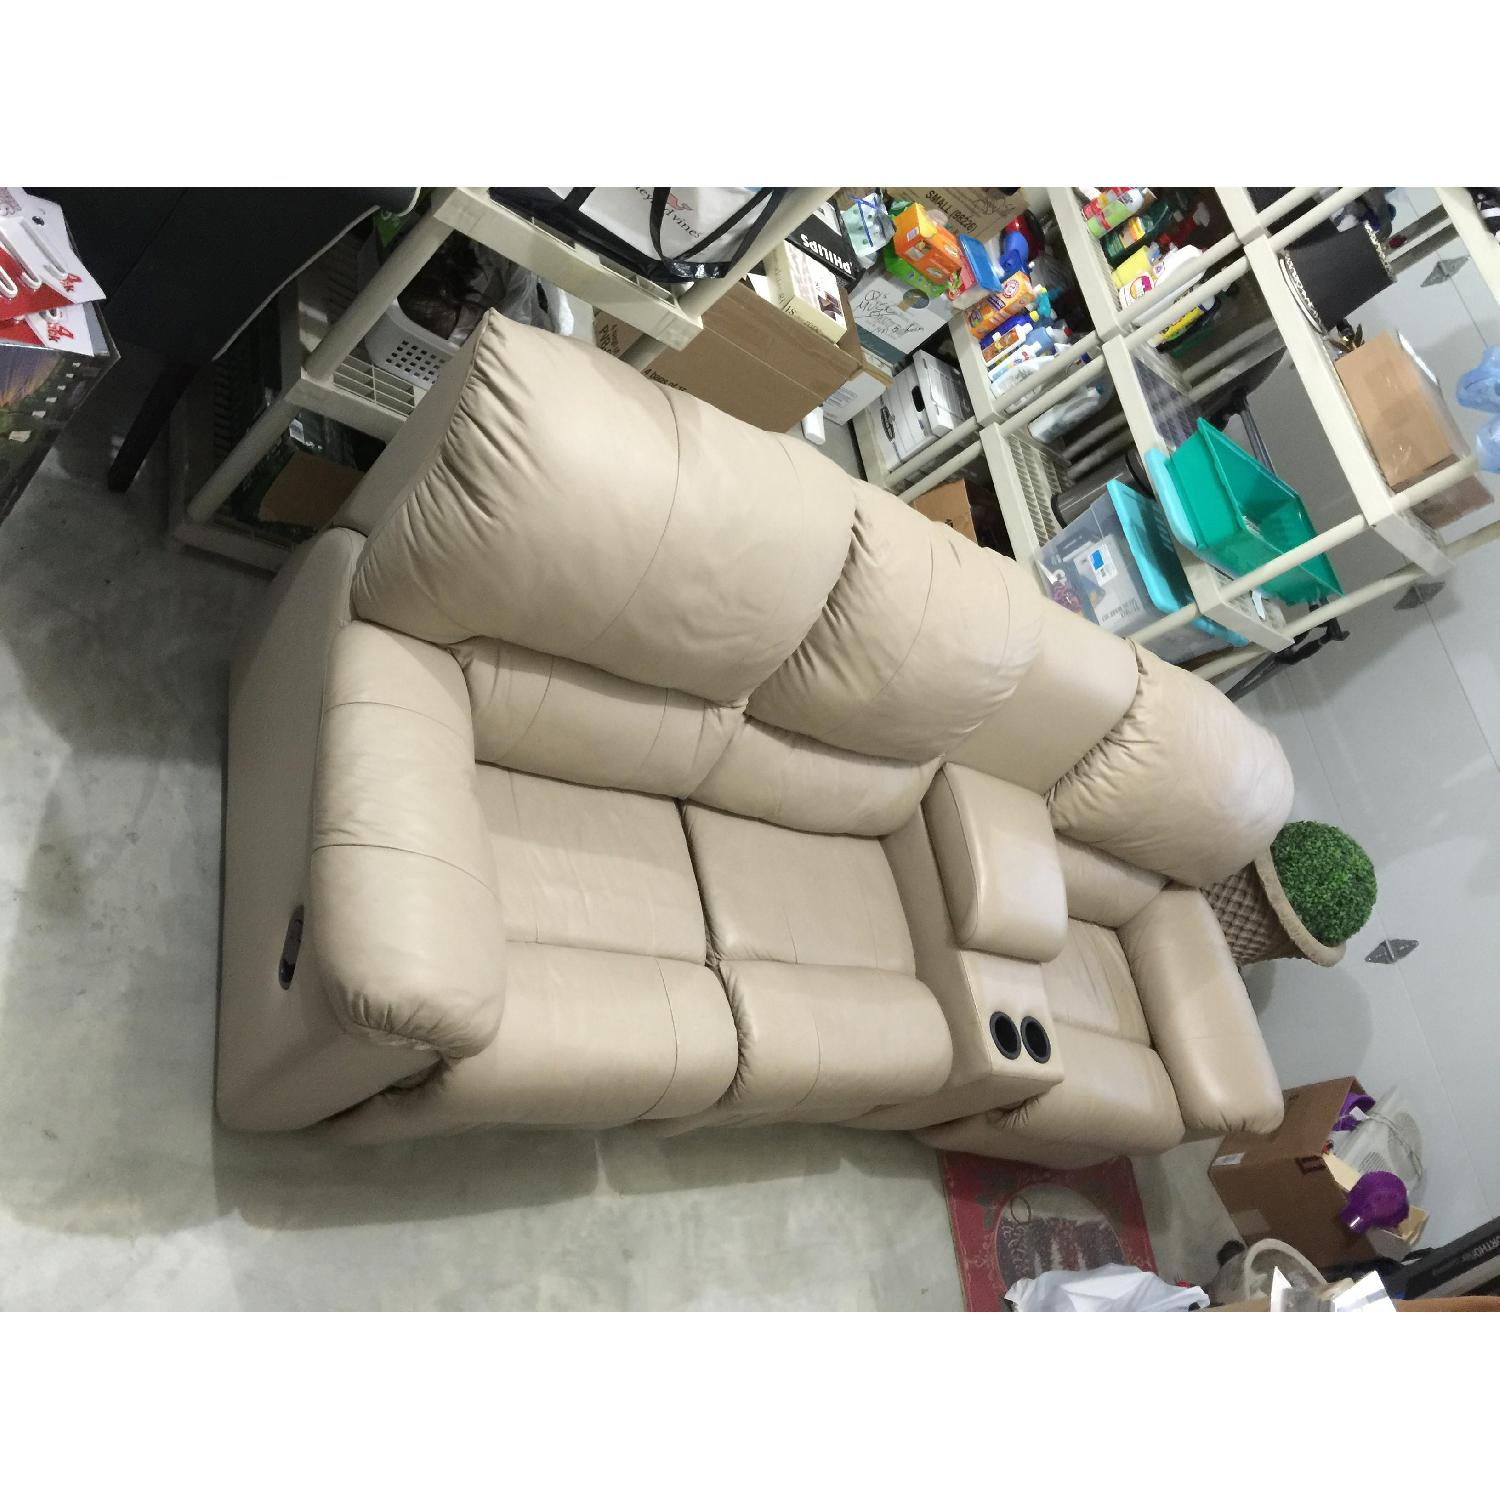 Tan Leather 4 Piece Sectional Sofa w/ Three Reclining Chairs - image-1